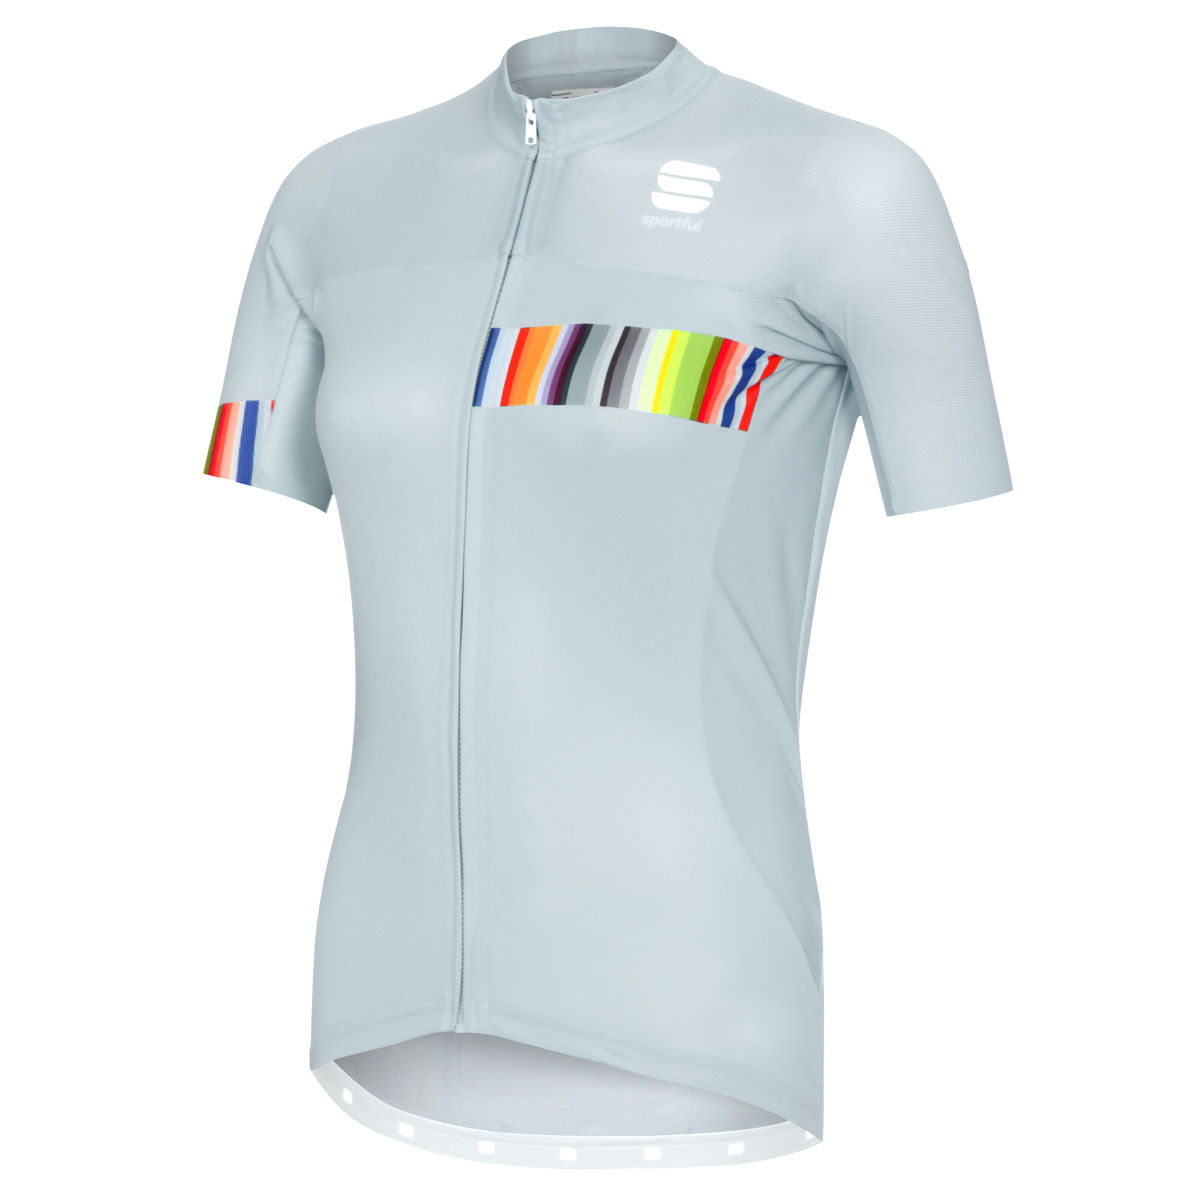 Maillot Femme Sportful Exclusive Rainbow BodyFit Team - M Grey